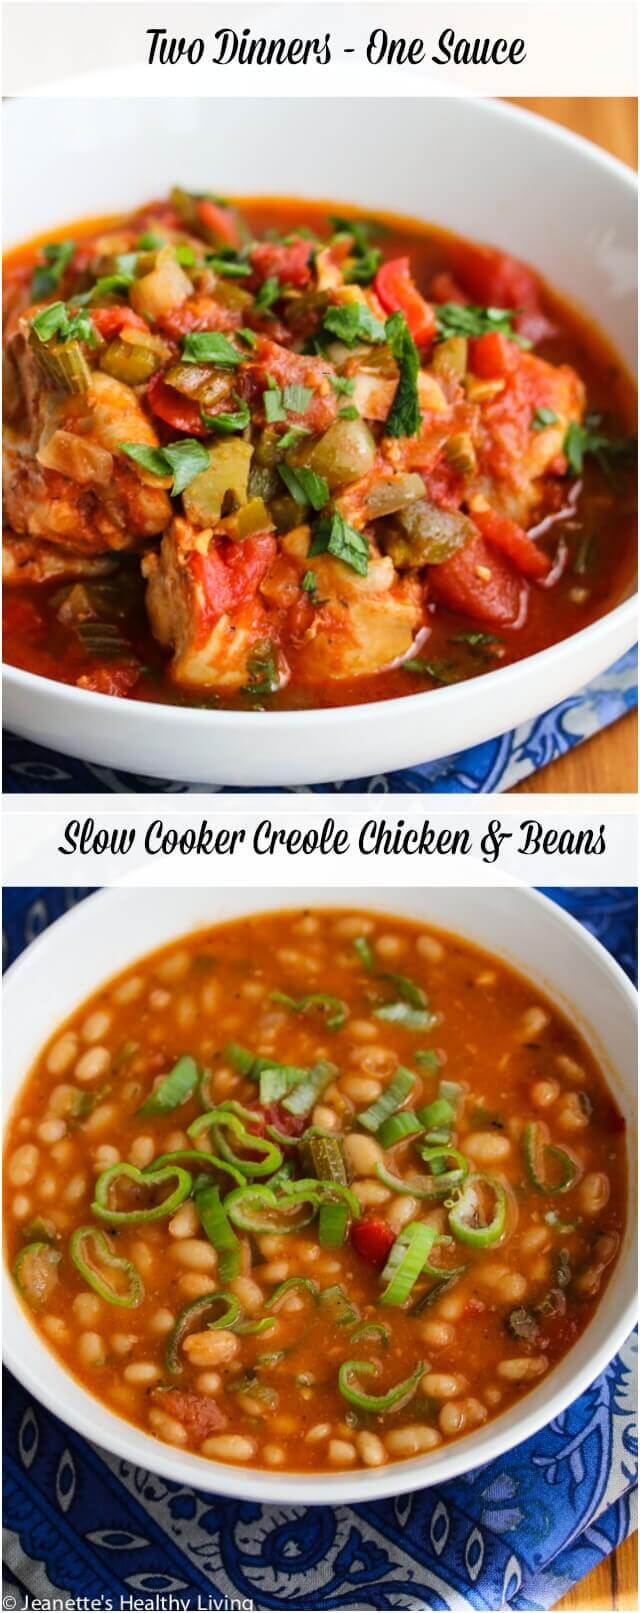 Slow Cooker Creole Chicken and Beans © Jeanette's Healthy Living